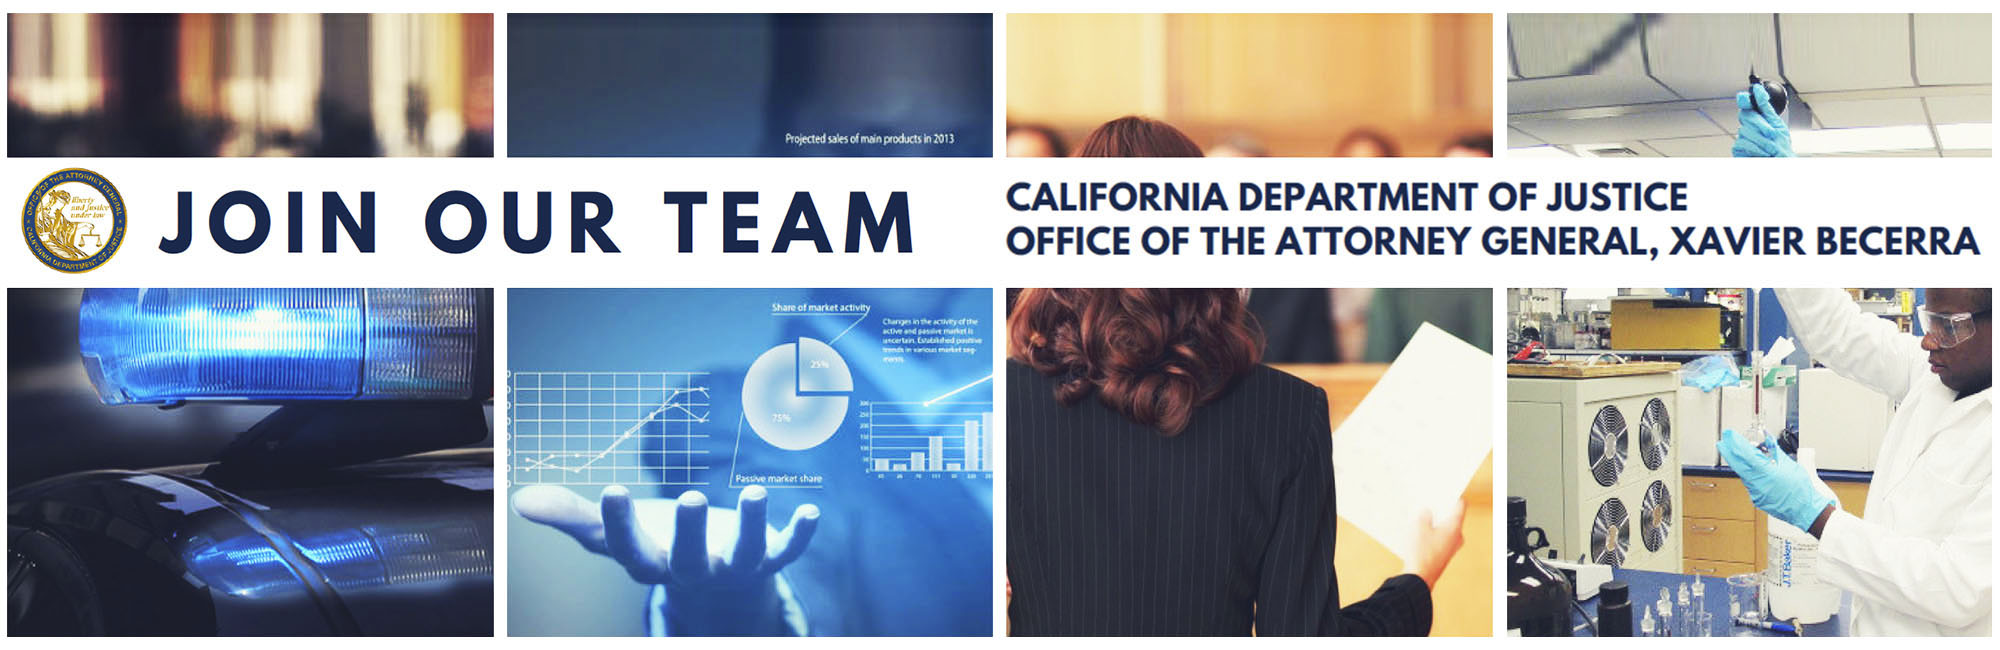 Join our team - California Department of Justice - Office of the Attorney General, Xavier Becerra.